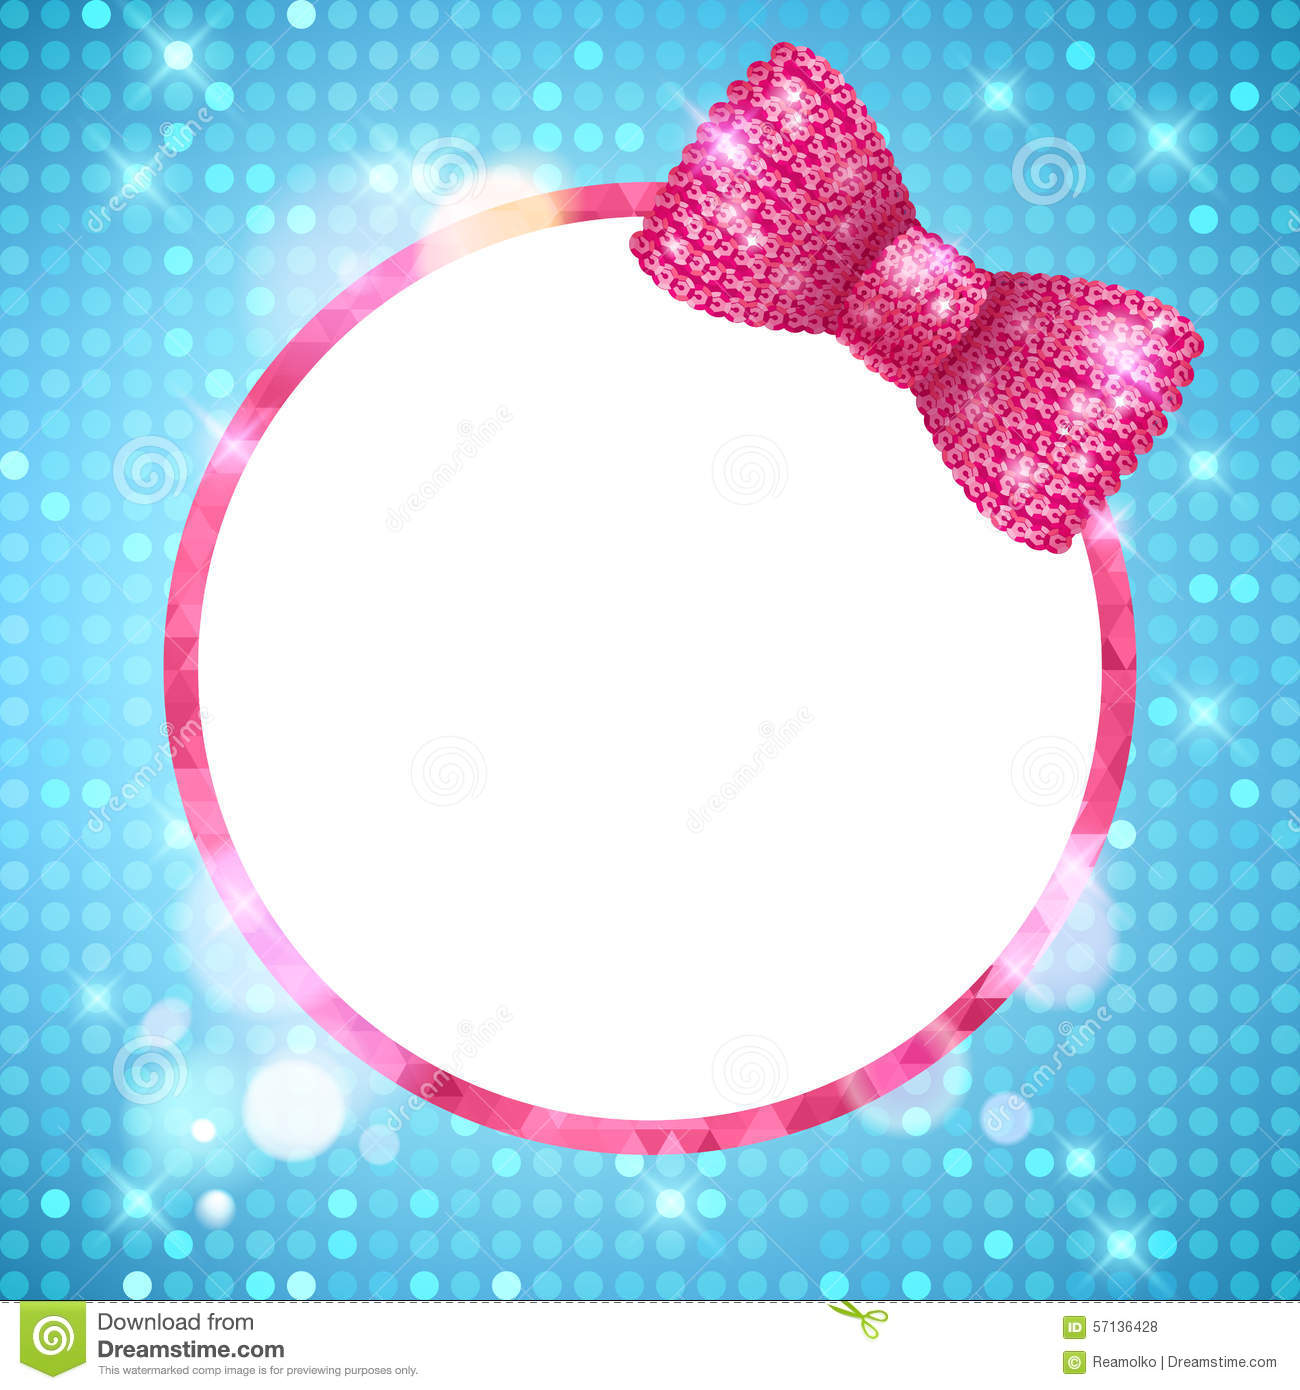 glitter sparkle frame border royaltyfree stock photo